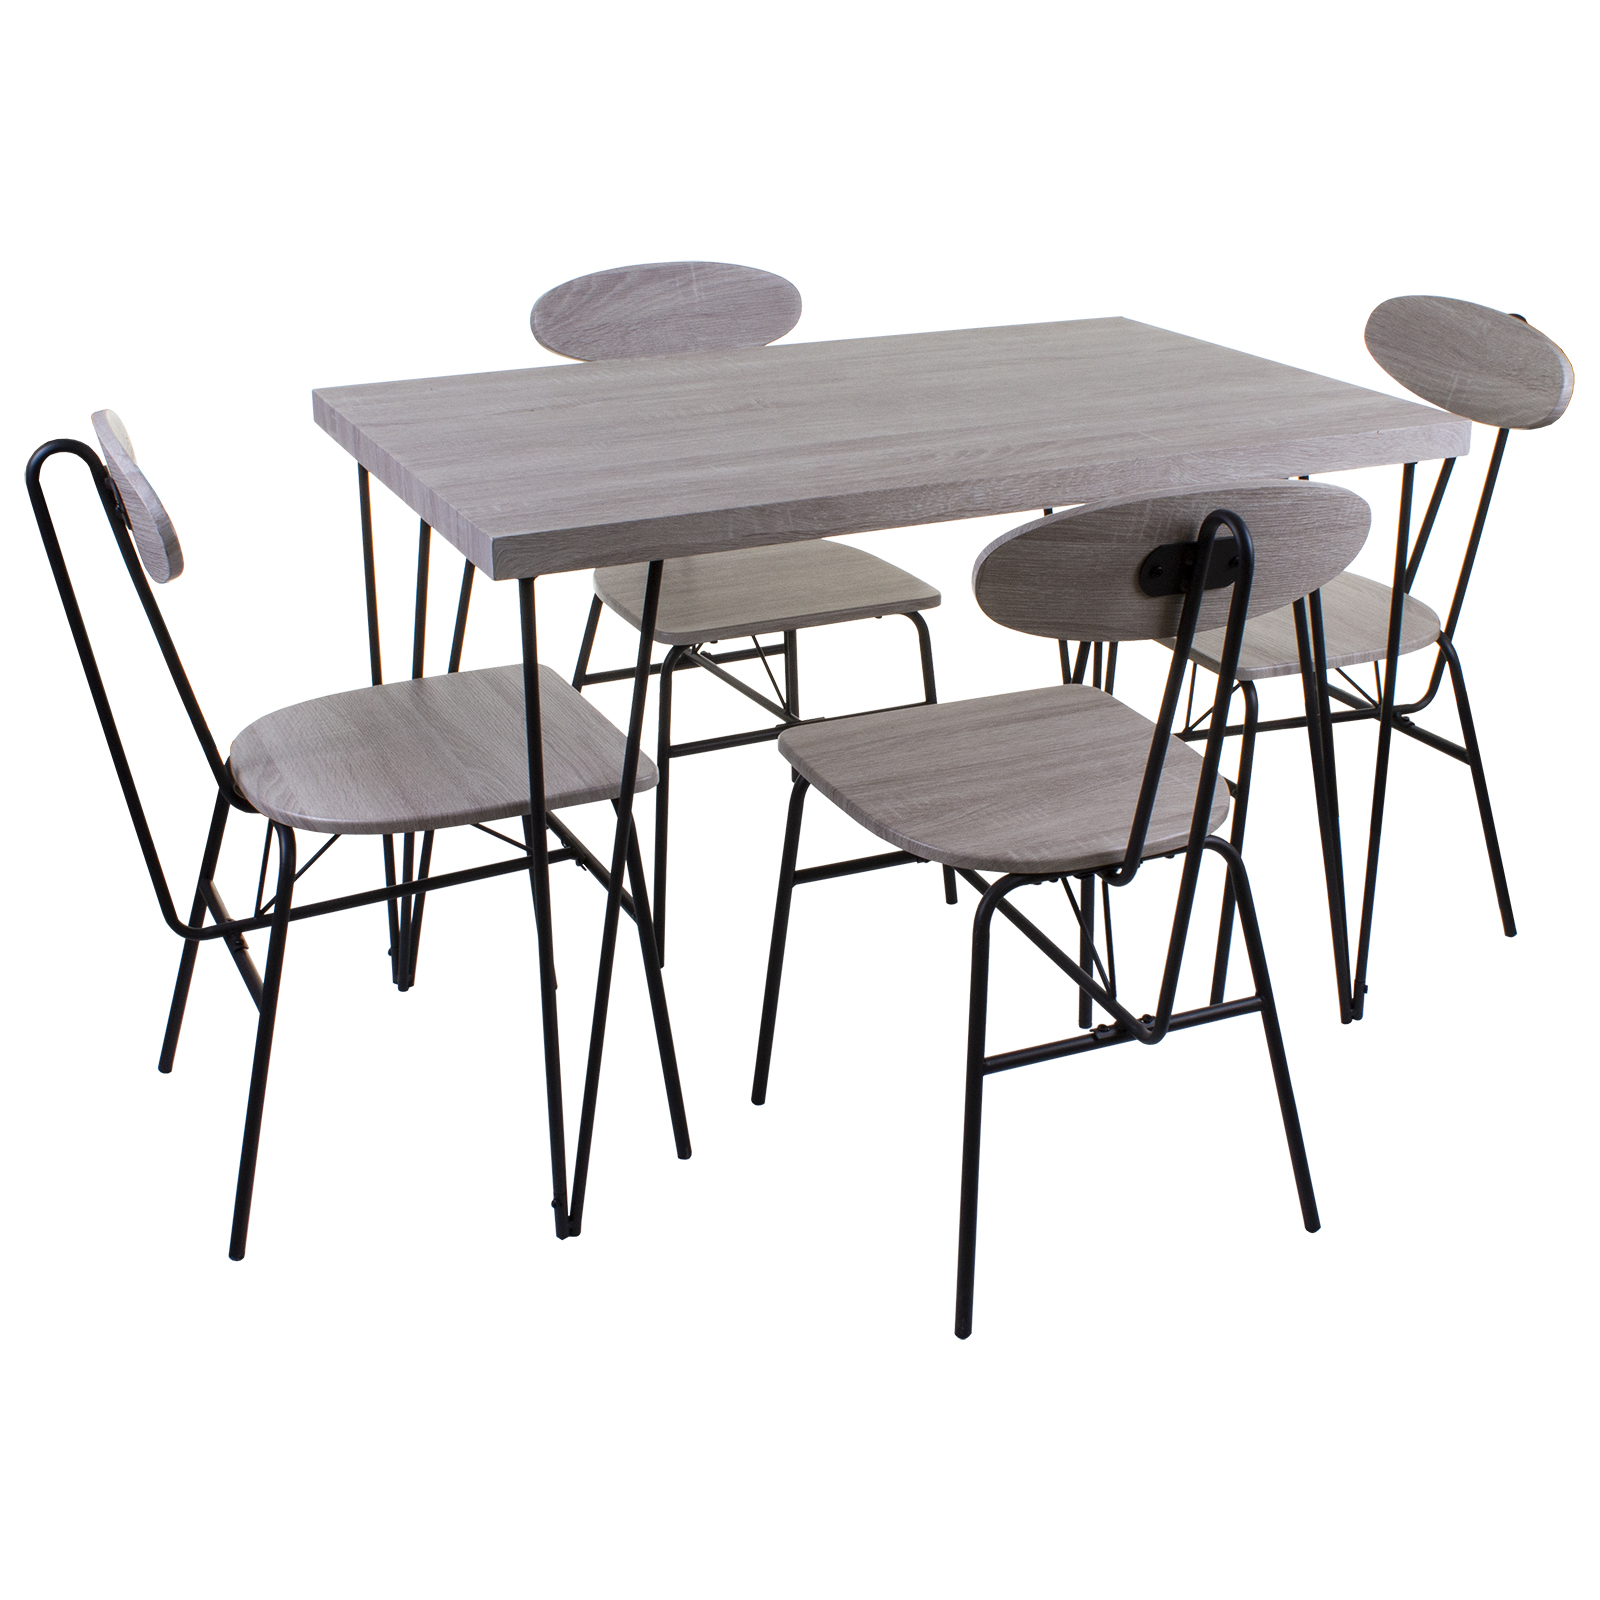 Magnificent Details About 5 Piece Dining Set Ash Grey Wood Effect Table Chairs Kitchen Home Furniture Download Free Architecture Designs Rallybritishbridgeorg